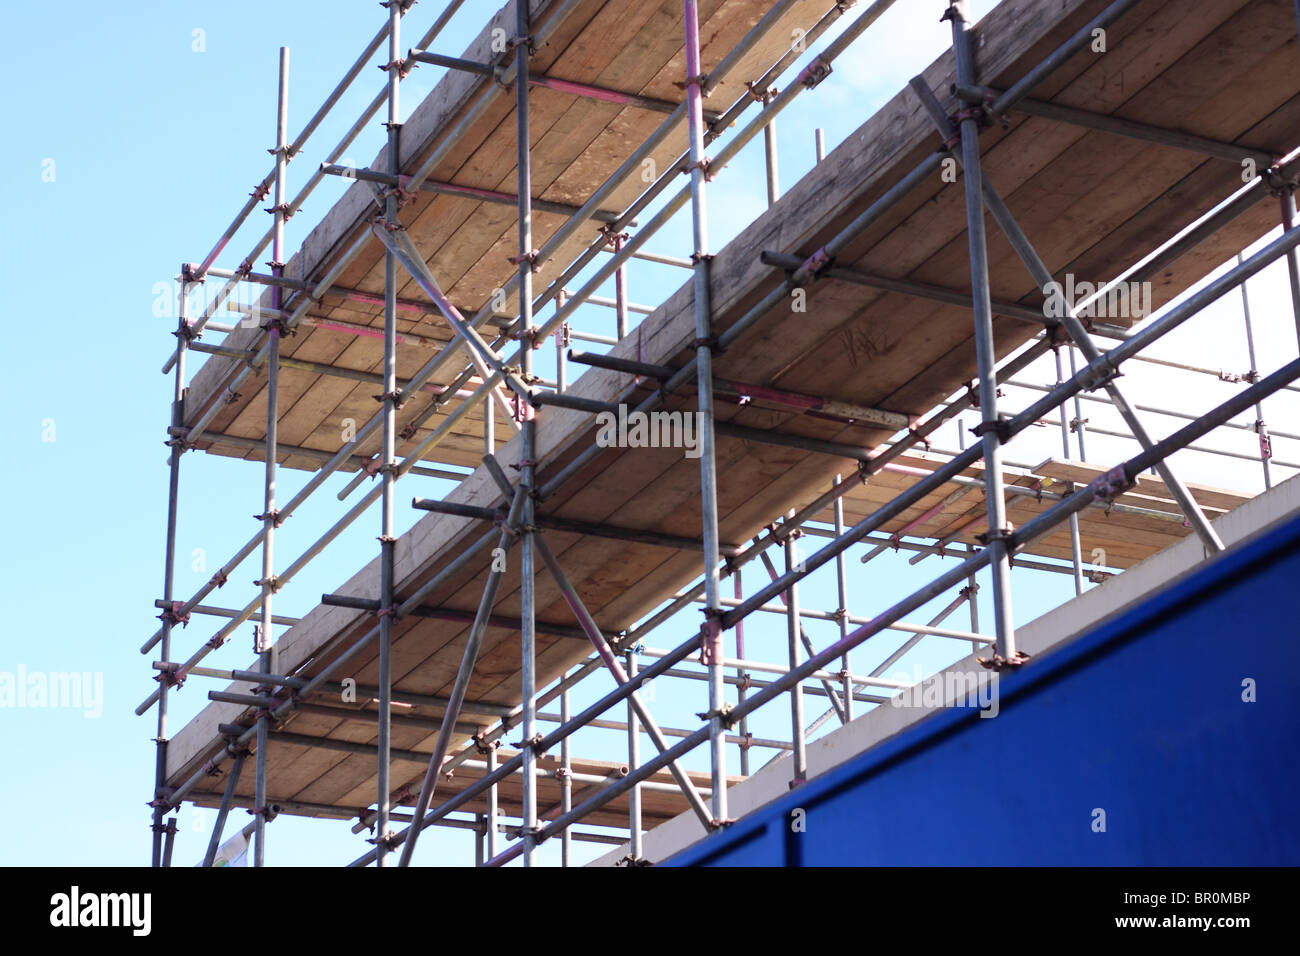 A section of the scaffolding on the building of a new Branch of Lidl supermarket. - Stock Image